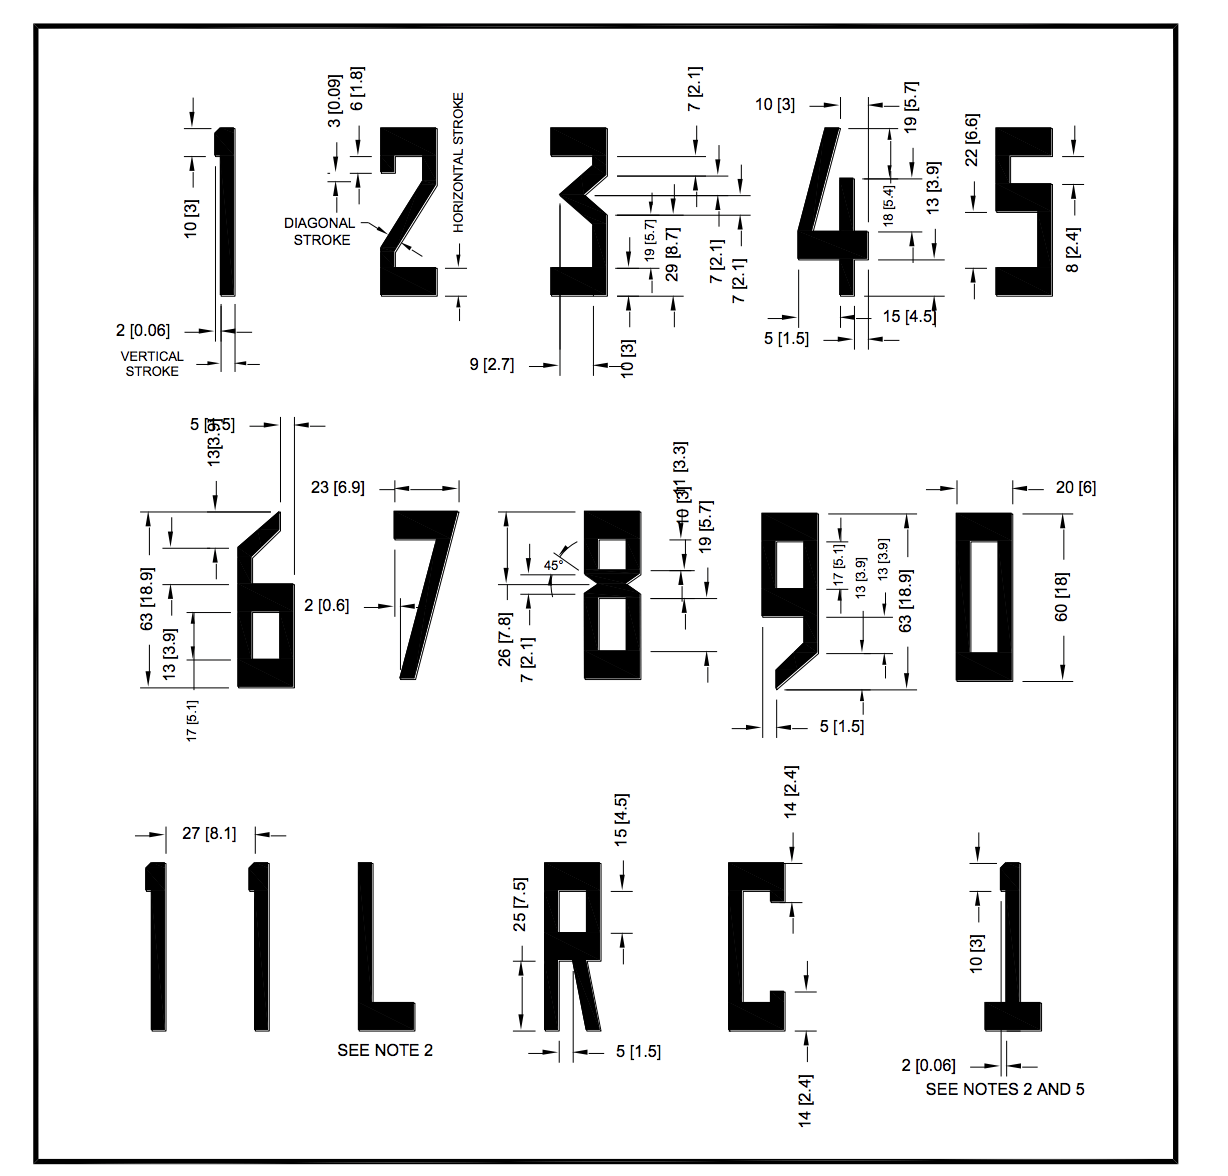 What Do Runway Numbers Mean?